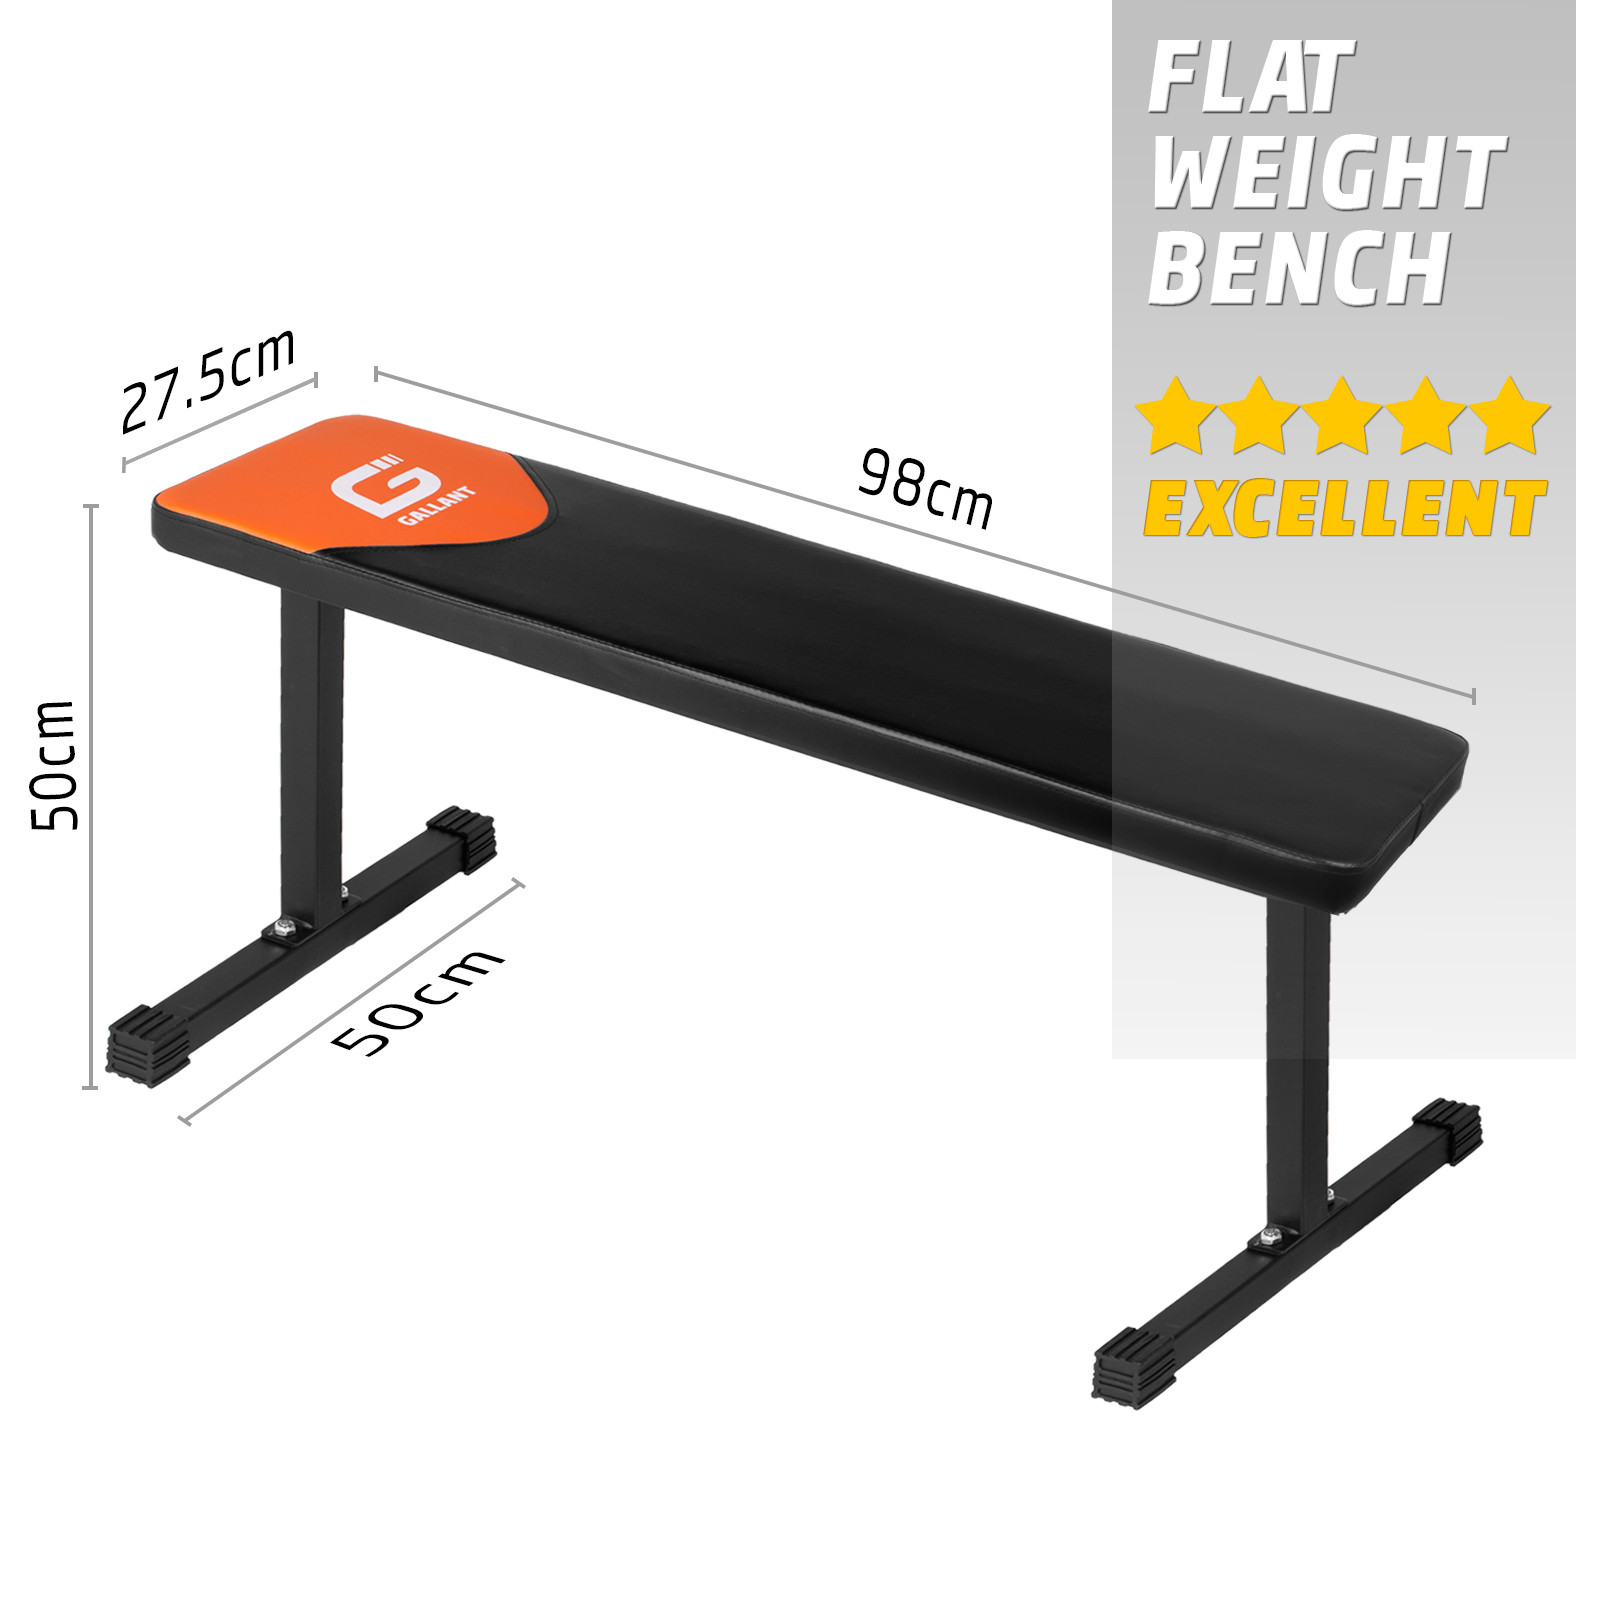 Weight Bench Flat Barbell Chest Biceps Press Gym Fitness Weight Lifting Workout Ebay